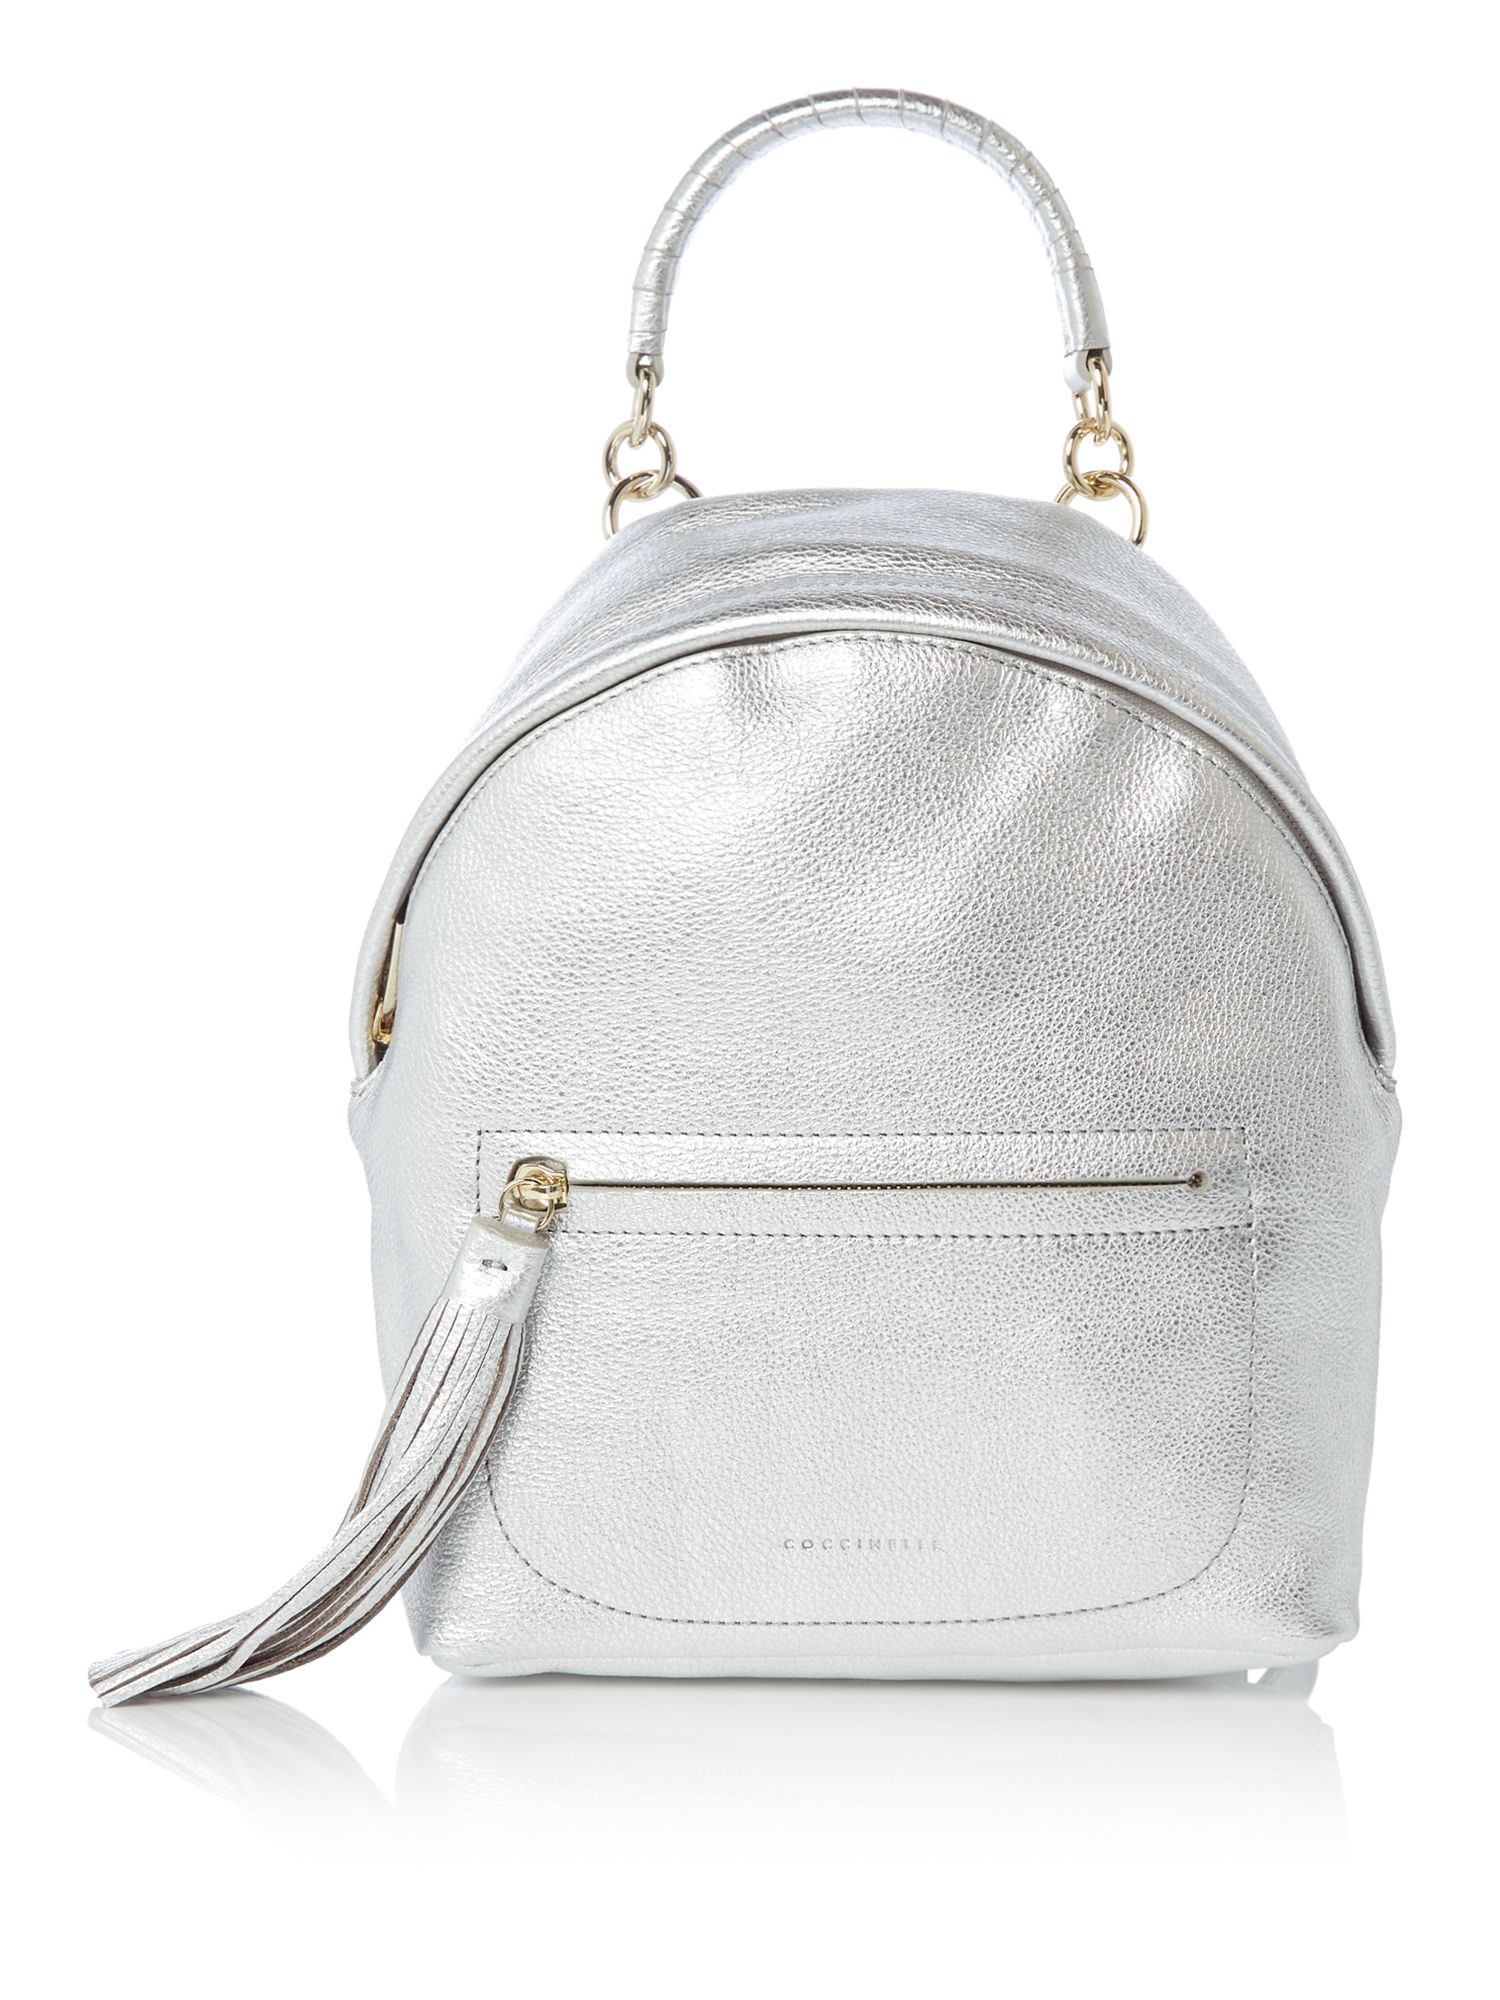 Coccinelle Leonie tassle backpack, Silver